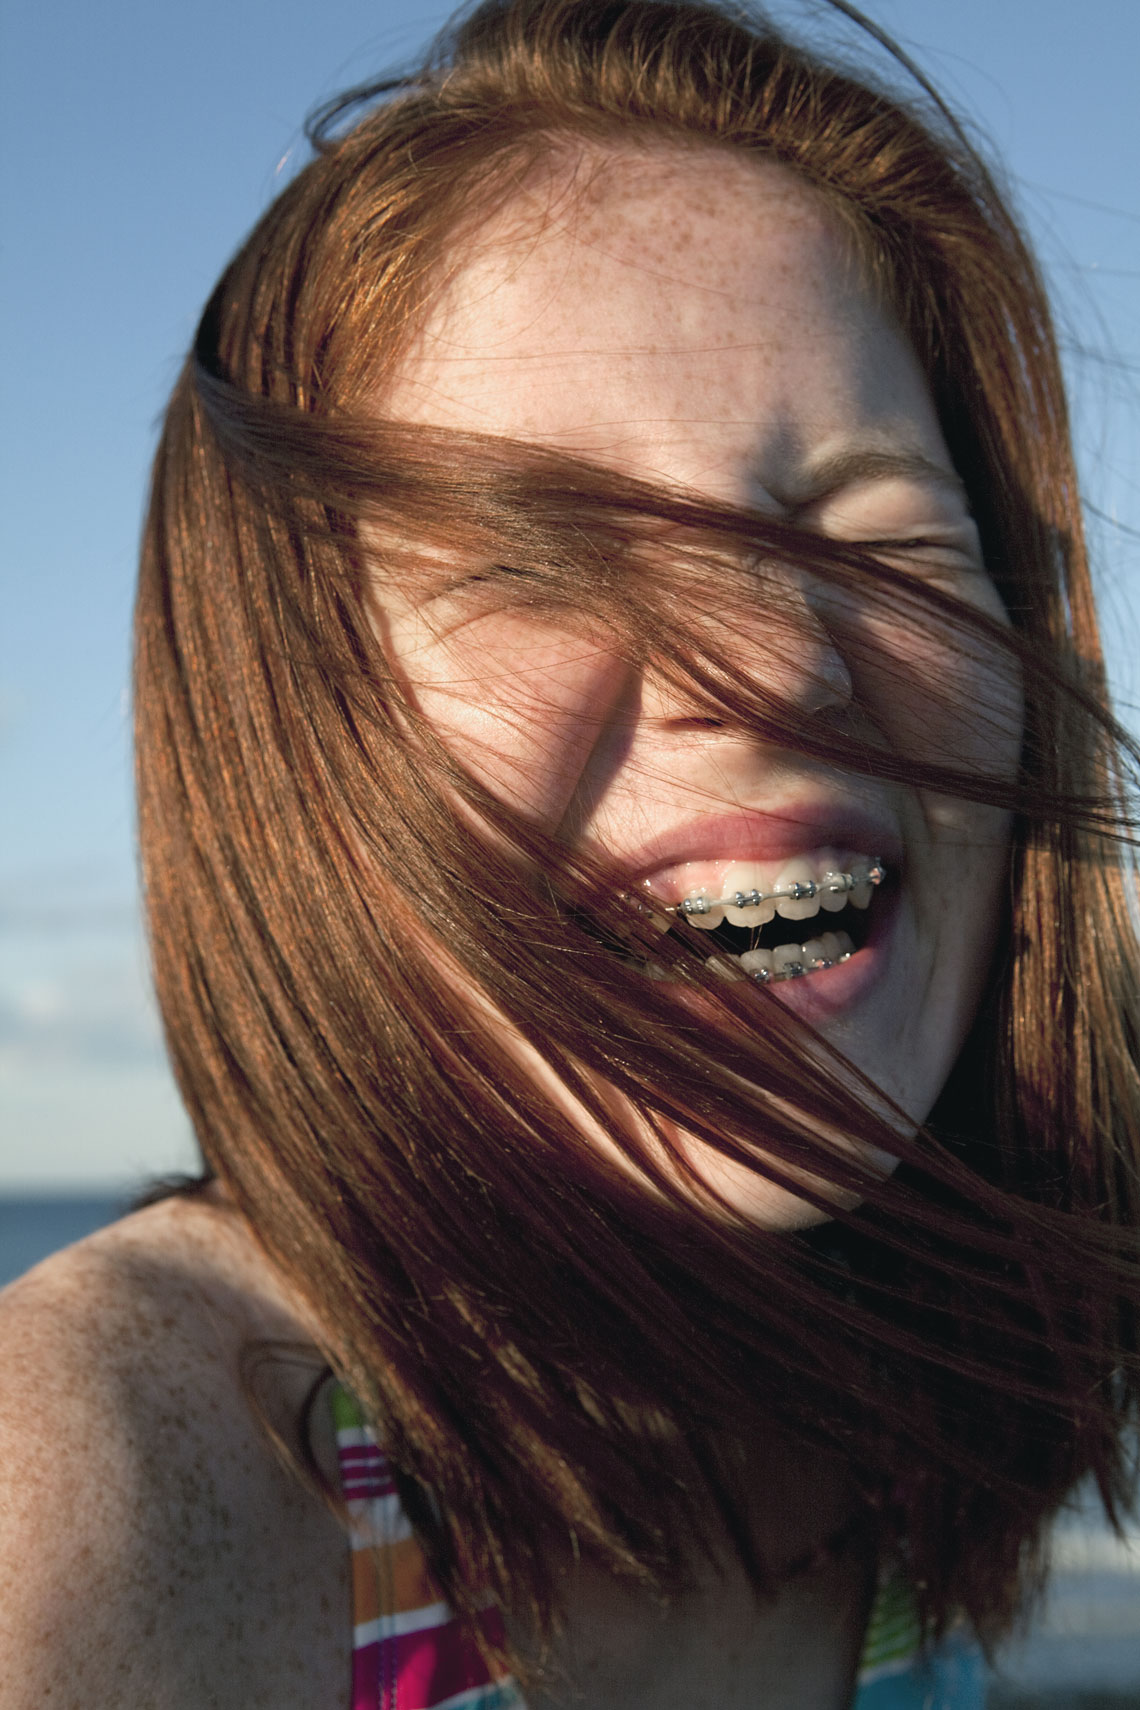 Teenage girl with braces laughing, portrait.